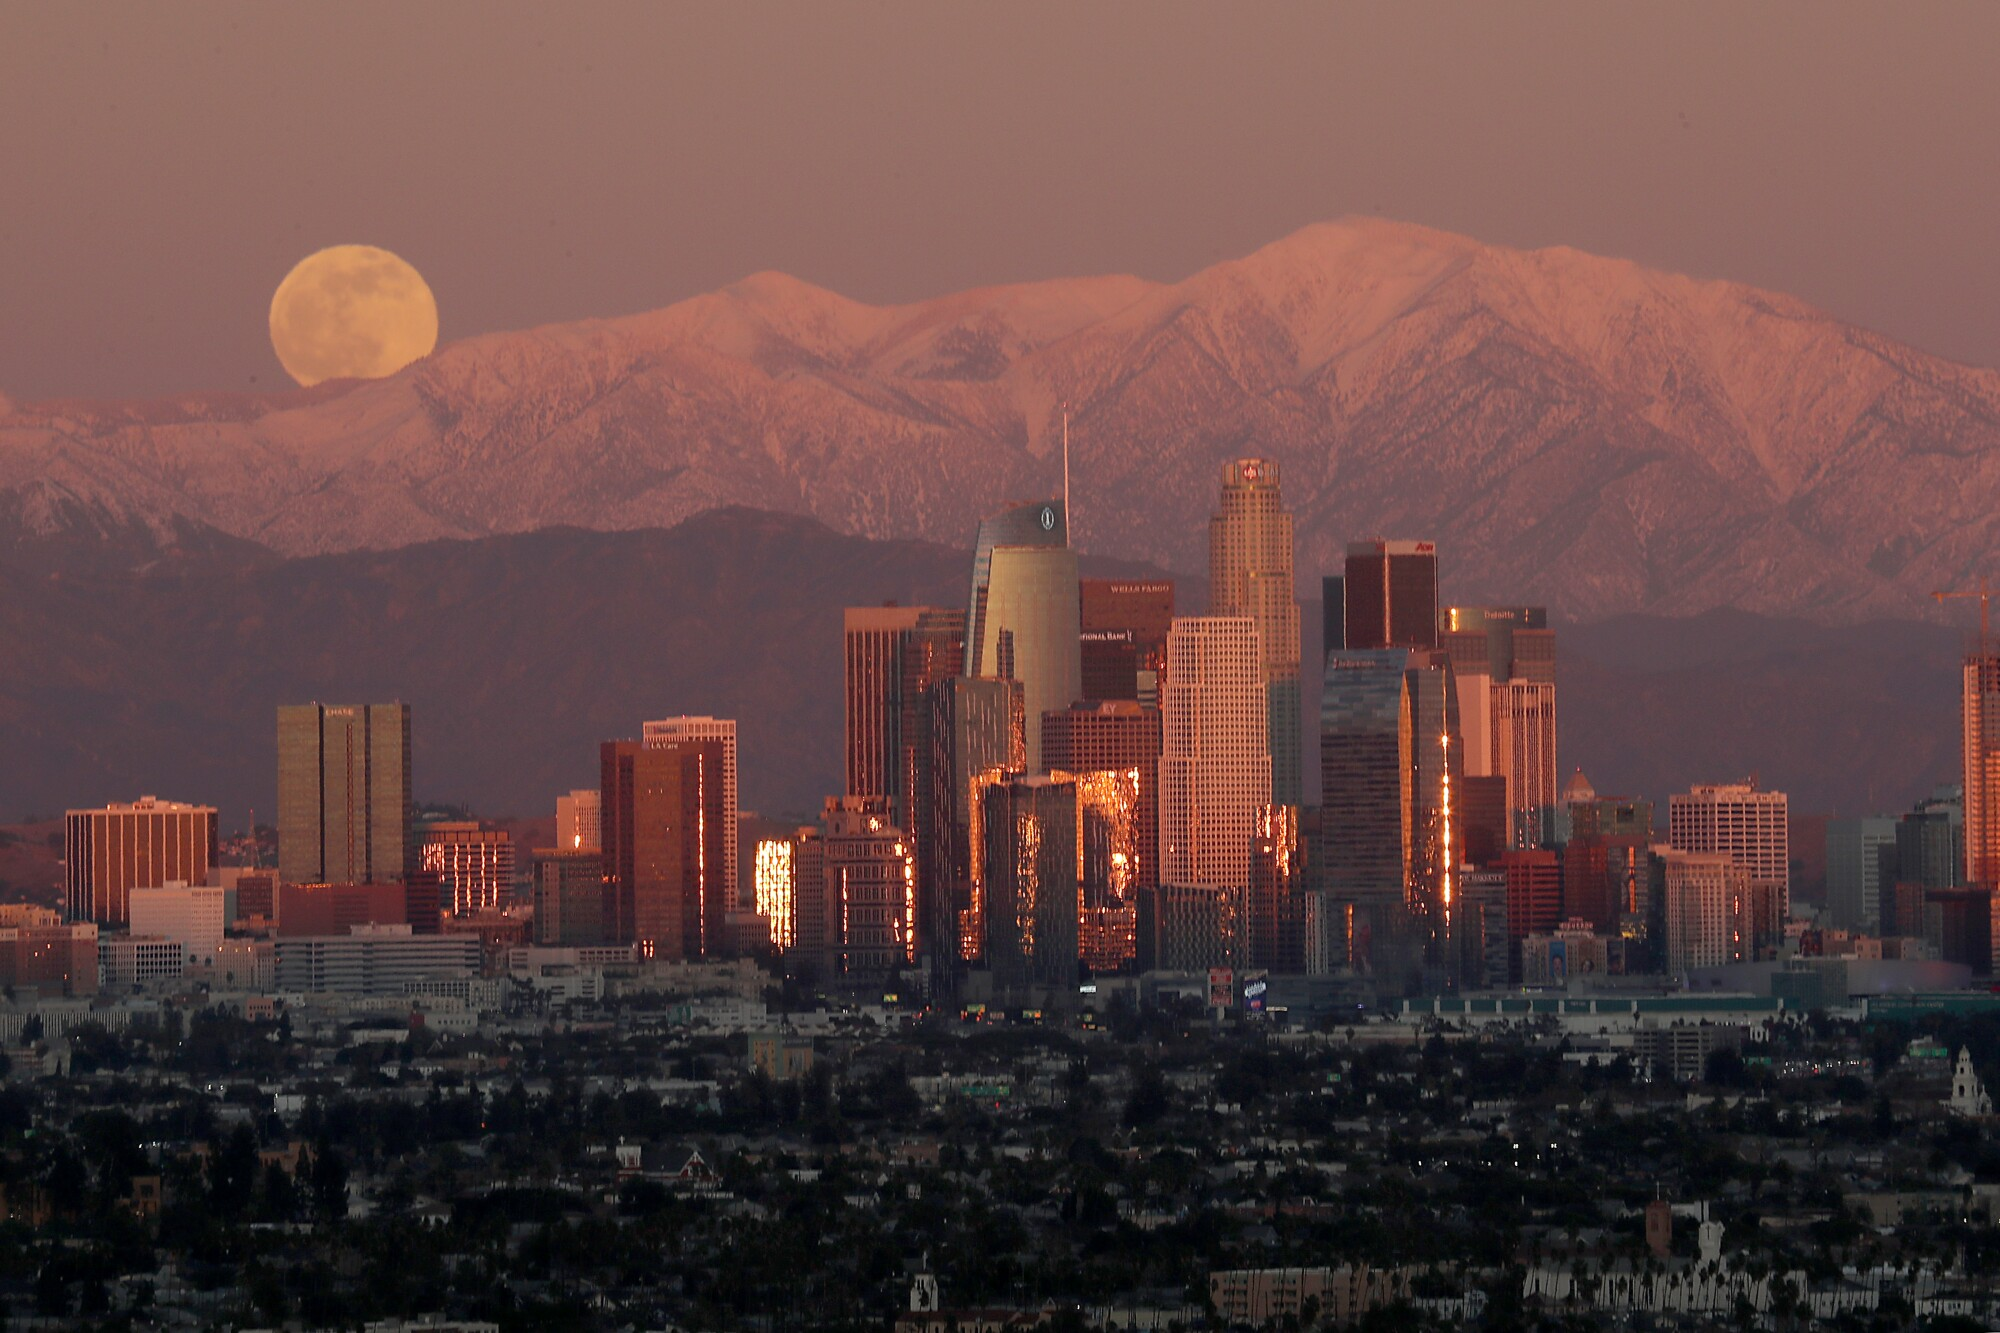 A full moon rises over the snow-capped San Gabriel Mountains and the skyline of downtown Los Angeles.